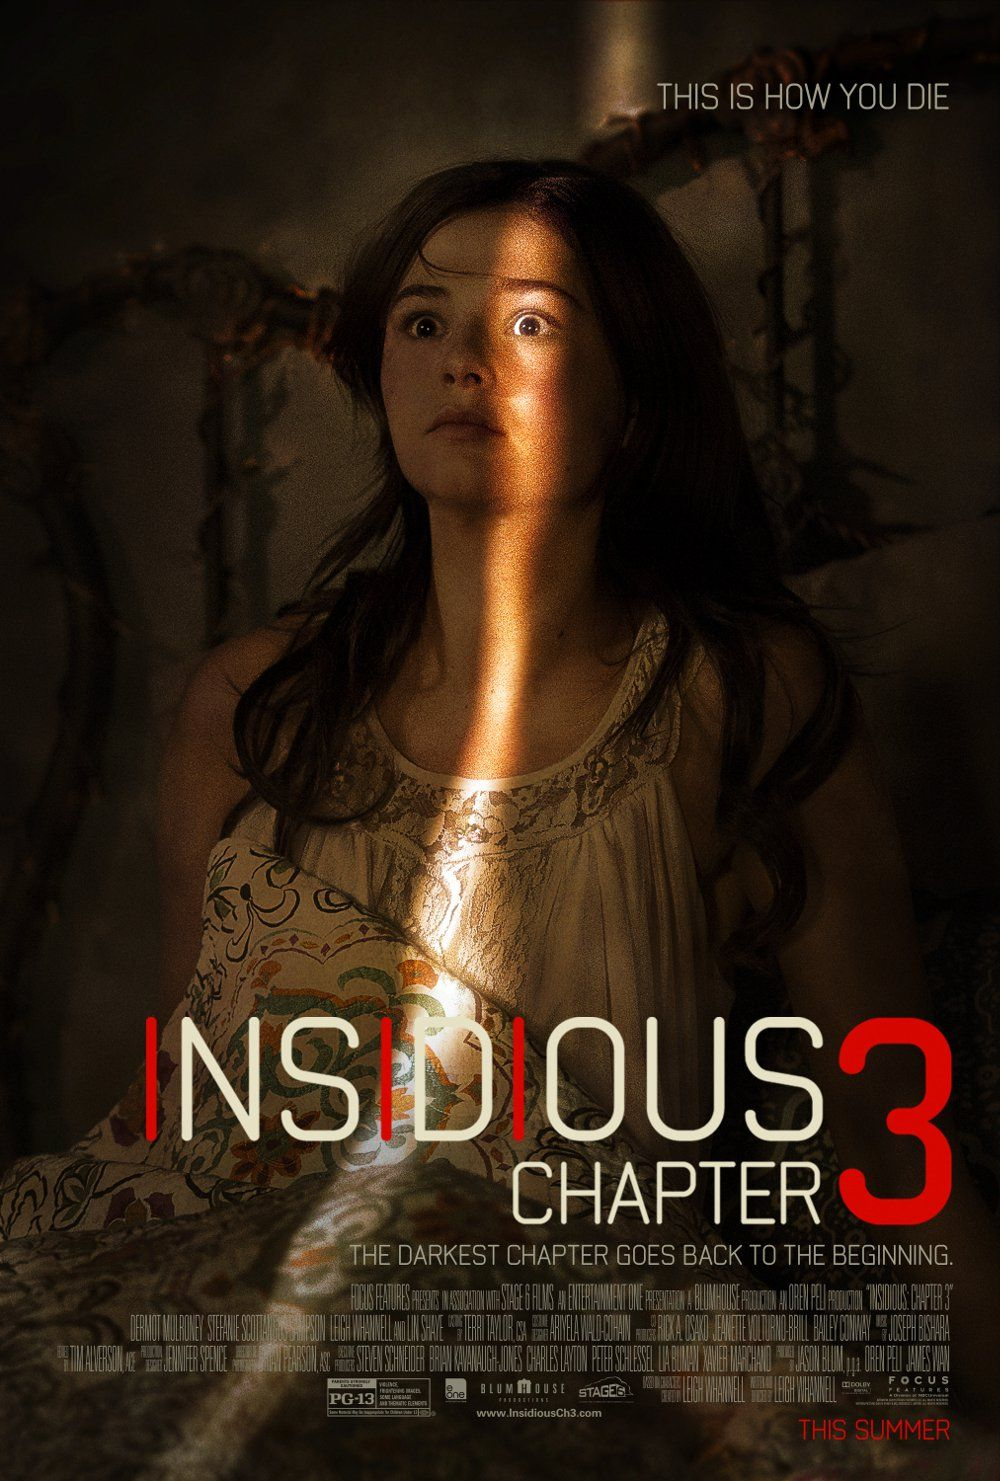 New Movie Poster For Insidious Chapter 3 With Terrified